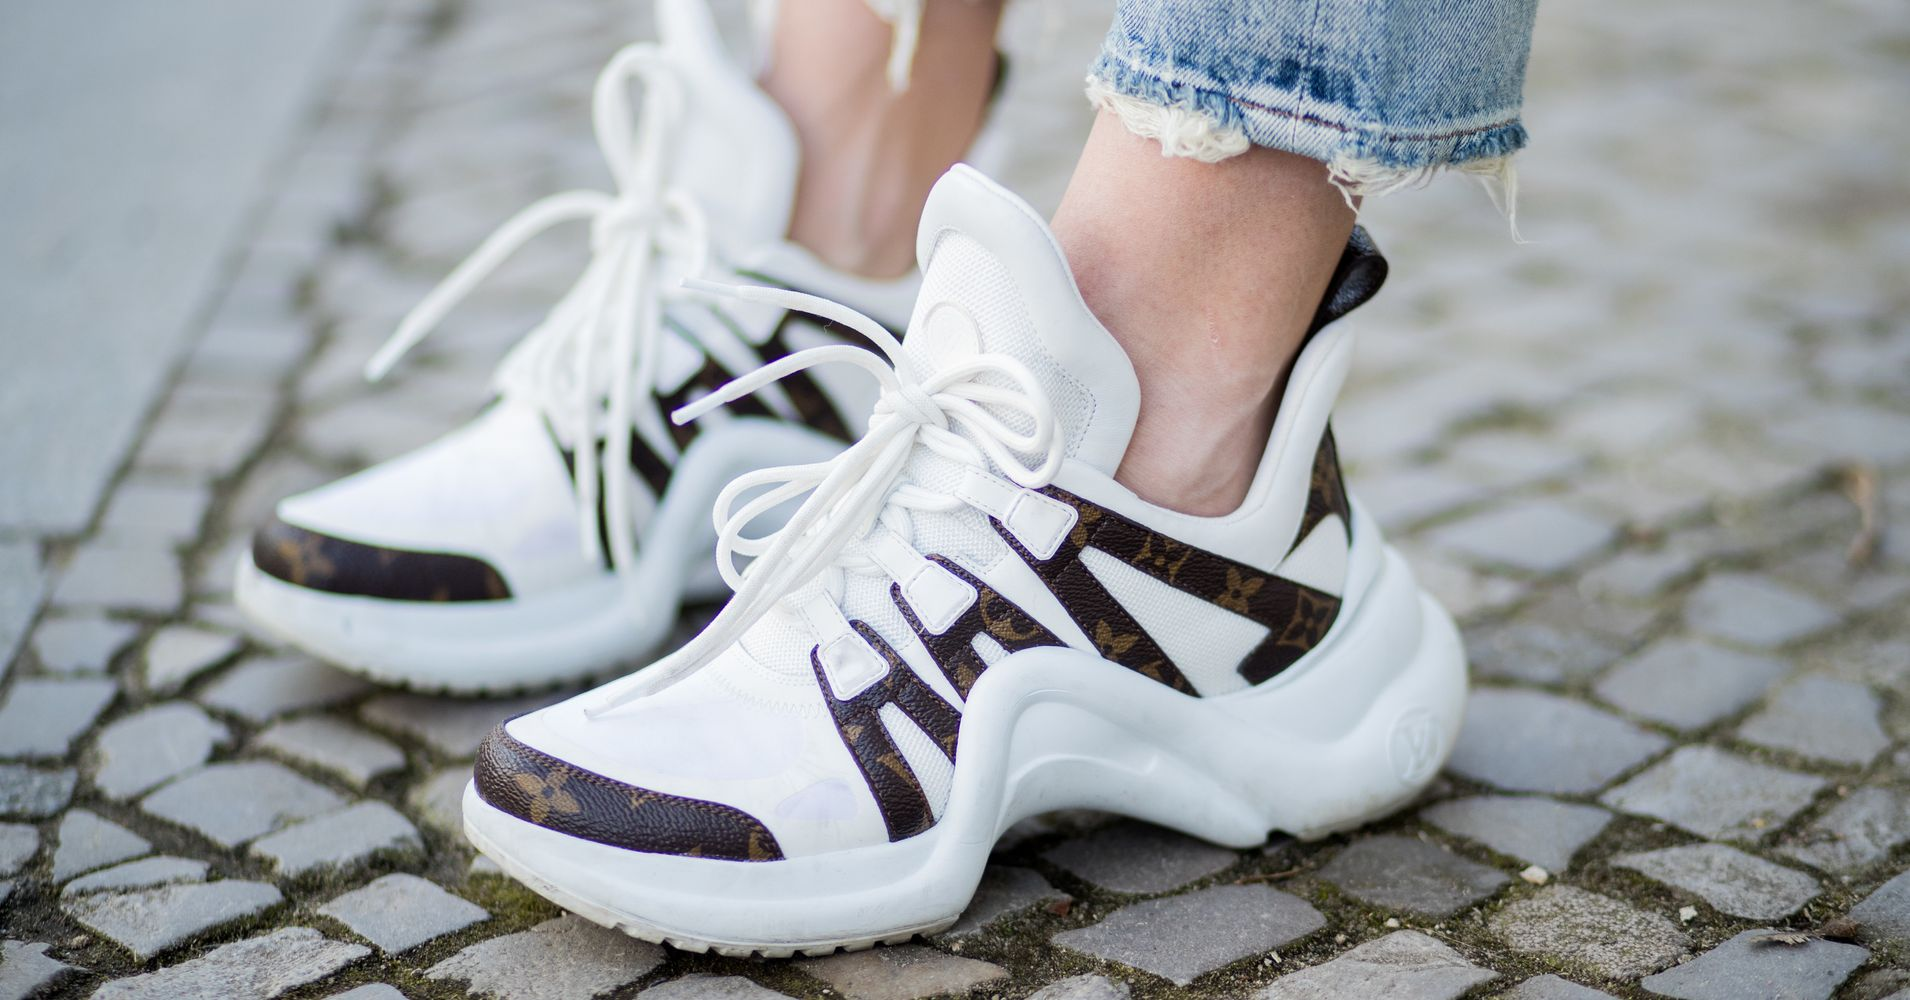 huge selection of 4da41 86dd8 The Ugly Sneakers Everyone Is Wearing This Summer   HuffPost Life